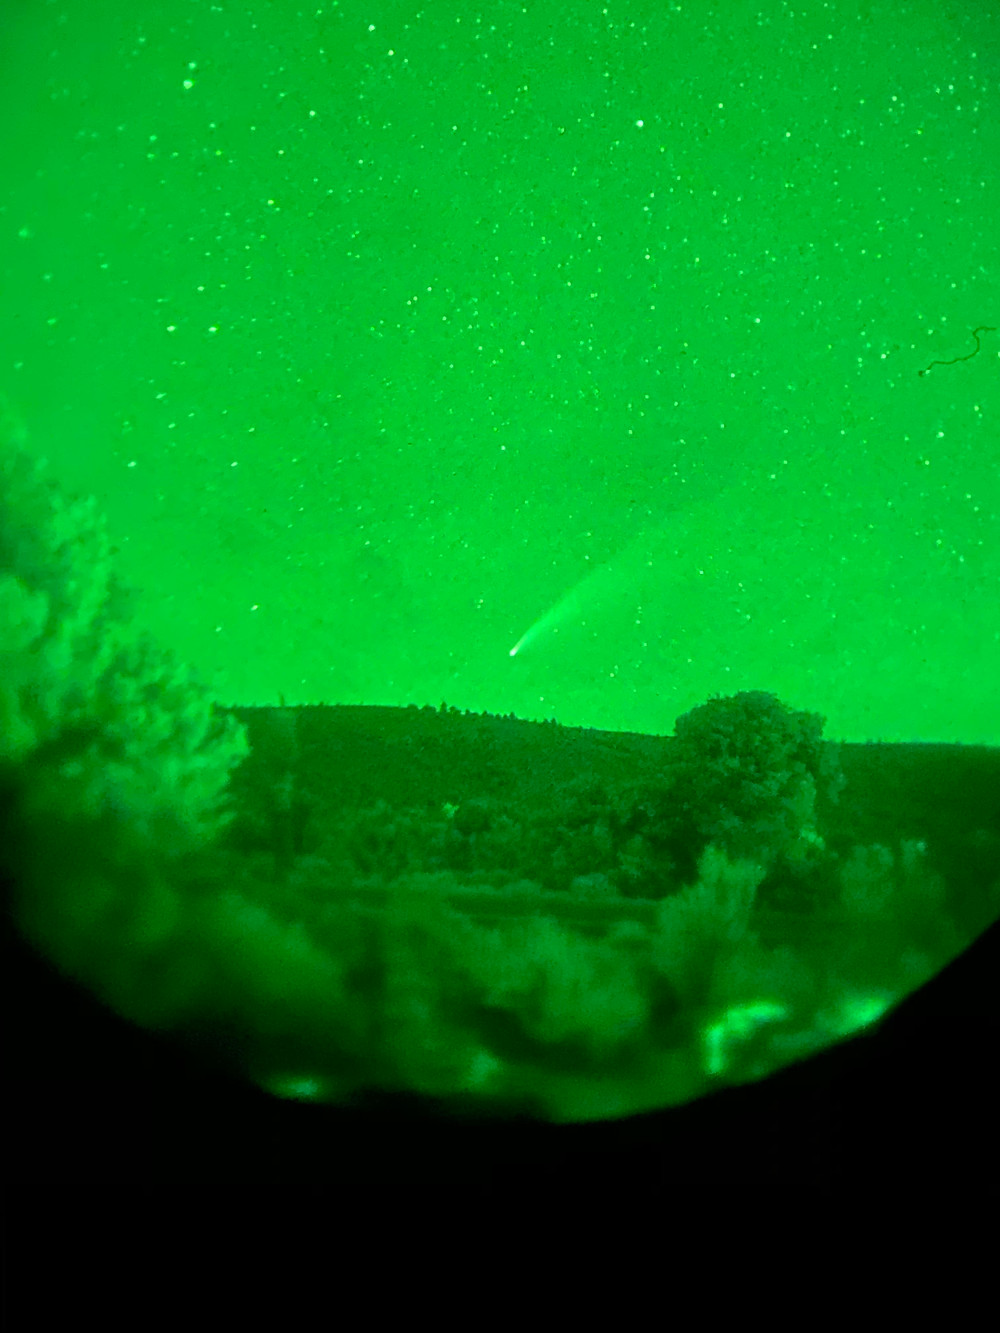 Comet NEOWISE through night vision goggles